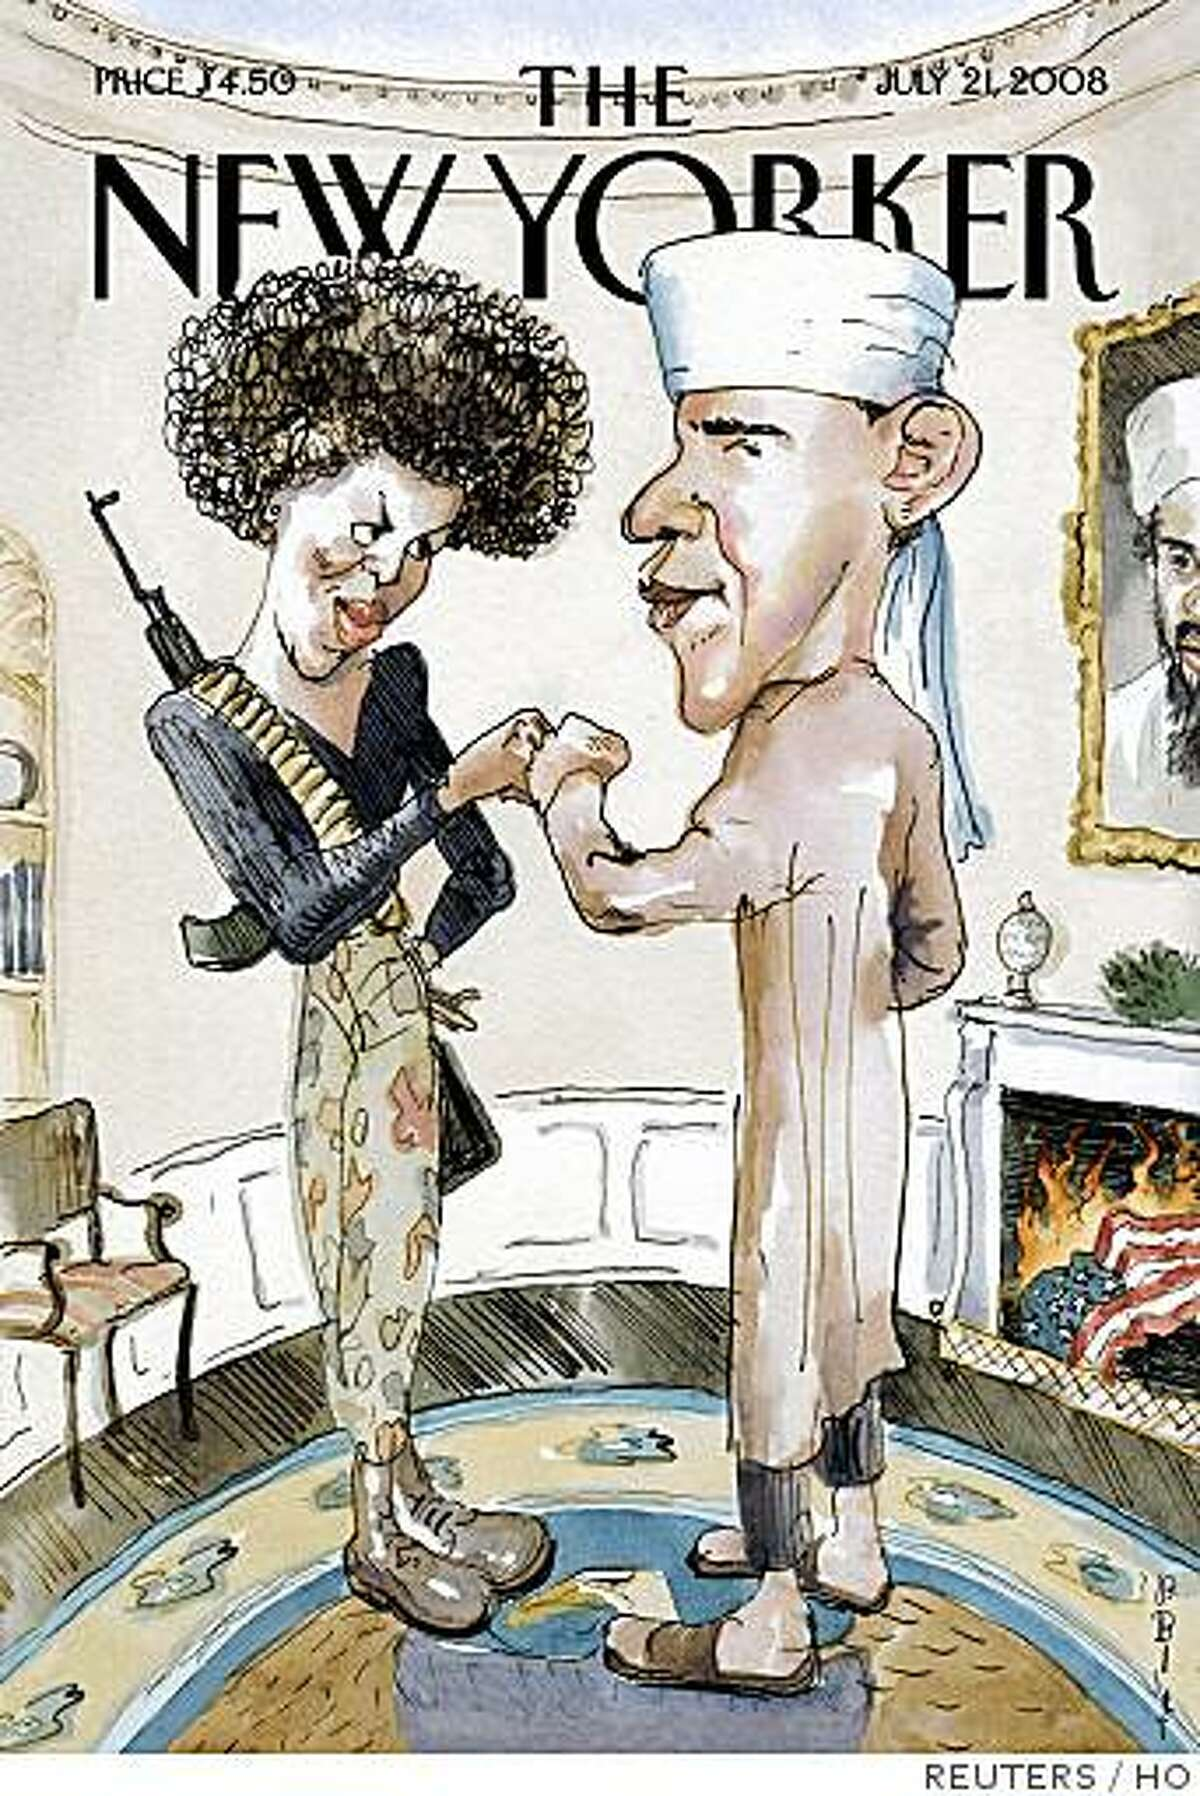 The cover of the July 21, 2008 issue of The New Yorker magazine entitled �The Politics of Fear,� by artist Barry Blitt featuring Barack Obama and his wife Michelle, is shown in this undated publicity photograph. According to the New Yorker, the cover satirizes the use of scare tactics and misinformation in the Presidential election to derail Barack Obama�s campaign. REUTERS/Courtesty of New Yorker Magazine/Handout (UNITED STATES). NO SALES. NO ARCHIVES. FOR EDITORIAL USE ONLY. NOT FOR SALE FOR MARKETING OR ADVERTISING CAMPAIGNS.